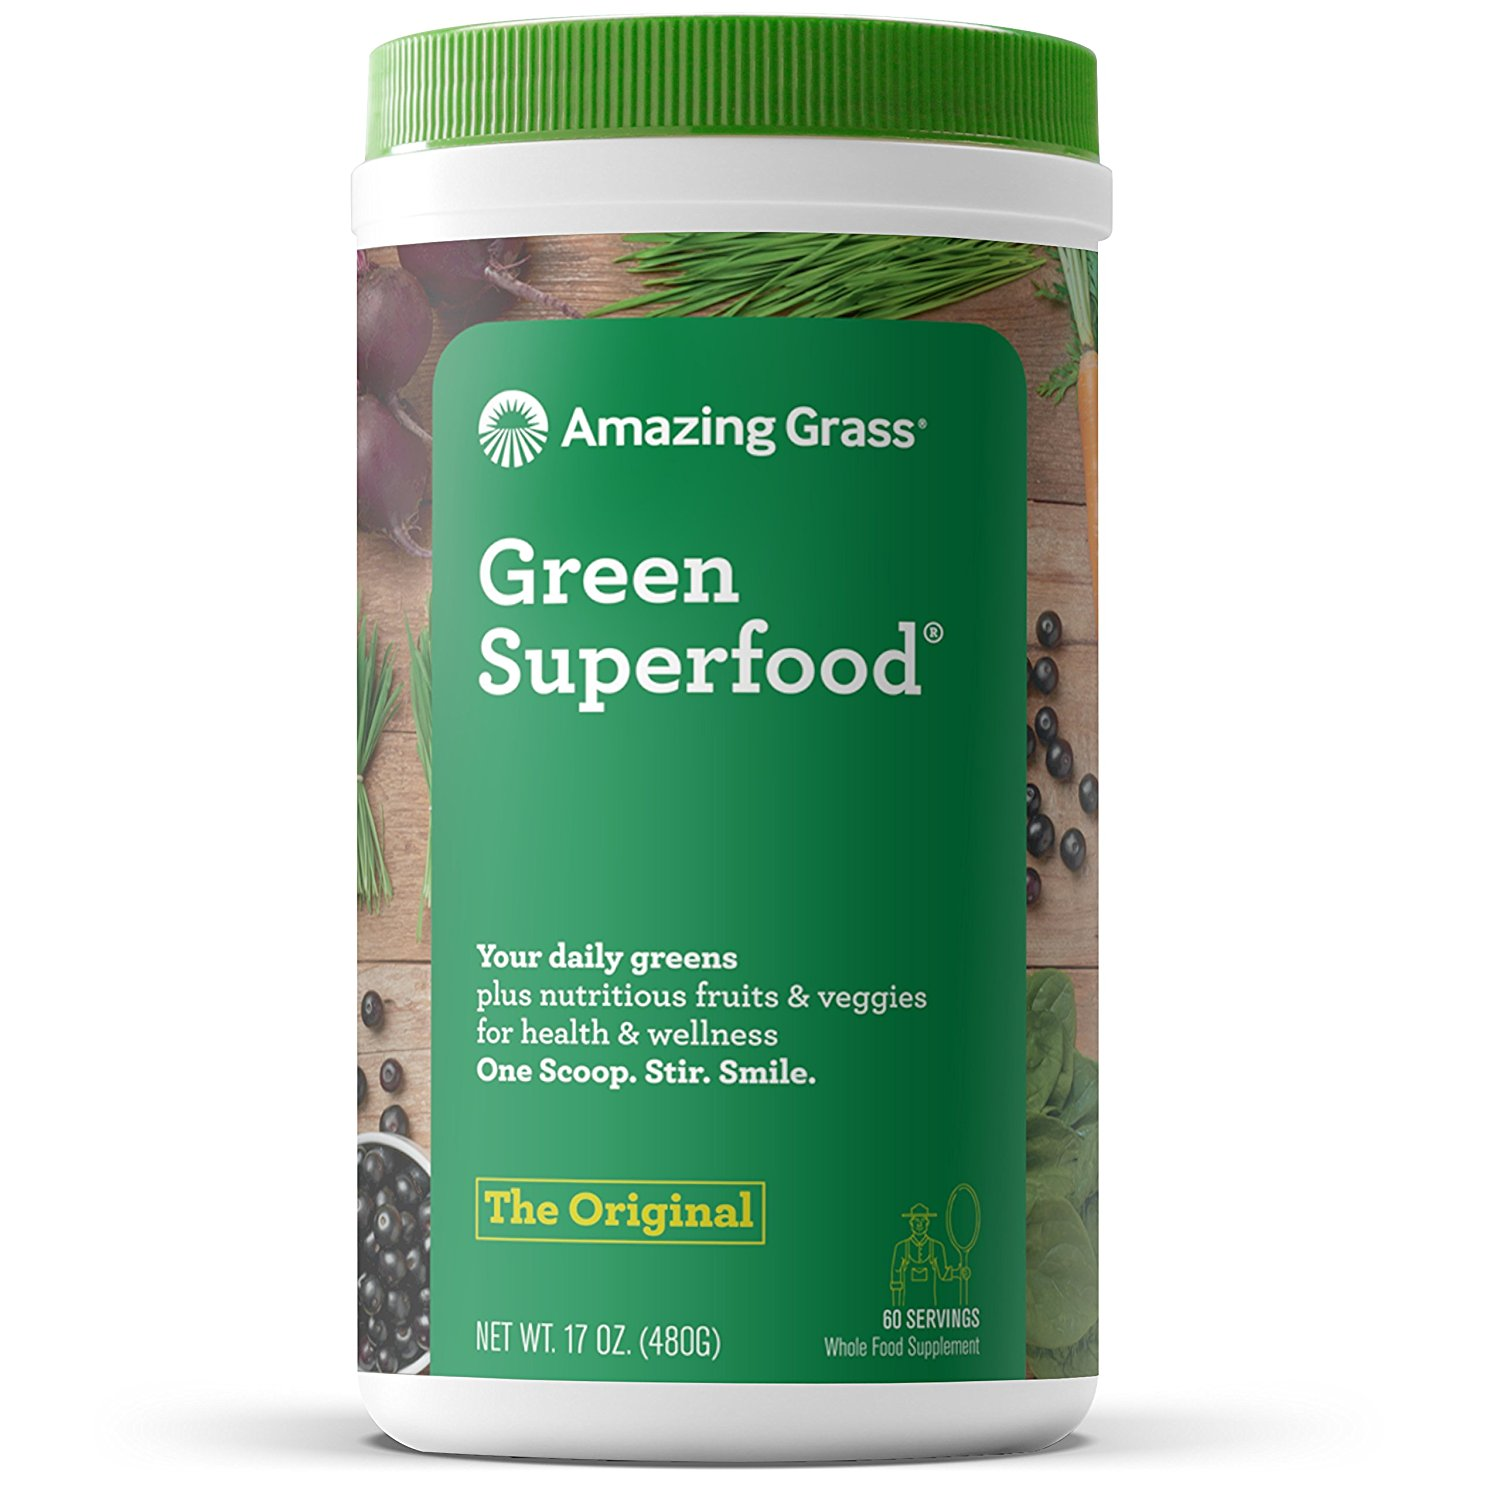 SUPER GREENS - A good greens powder provides a tonne of micronutrients to help boost your immune system.This can be taken year round but should be prioritised during the winter months and leading into and out of competitionsThis one actually tastes great and contains an incredible blend of ingredients